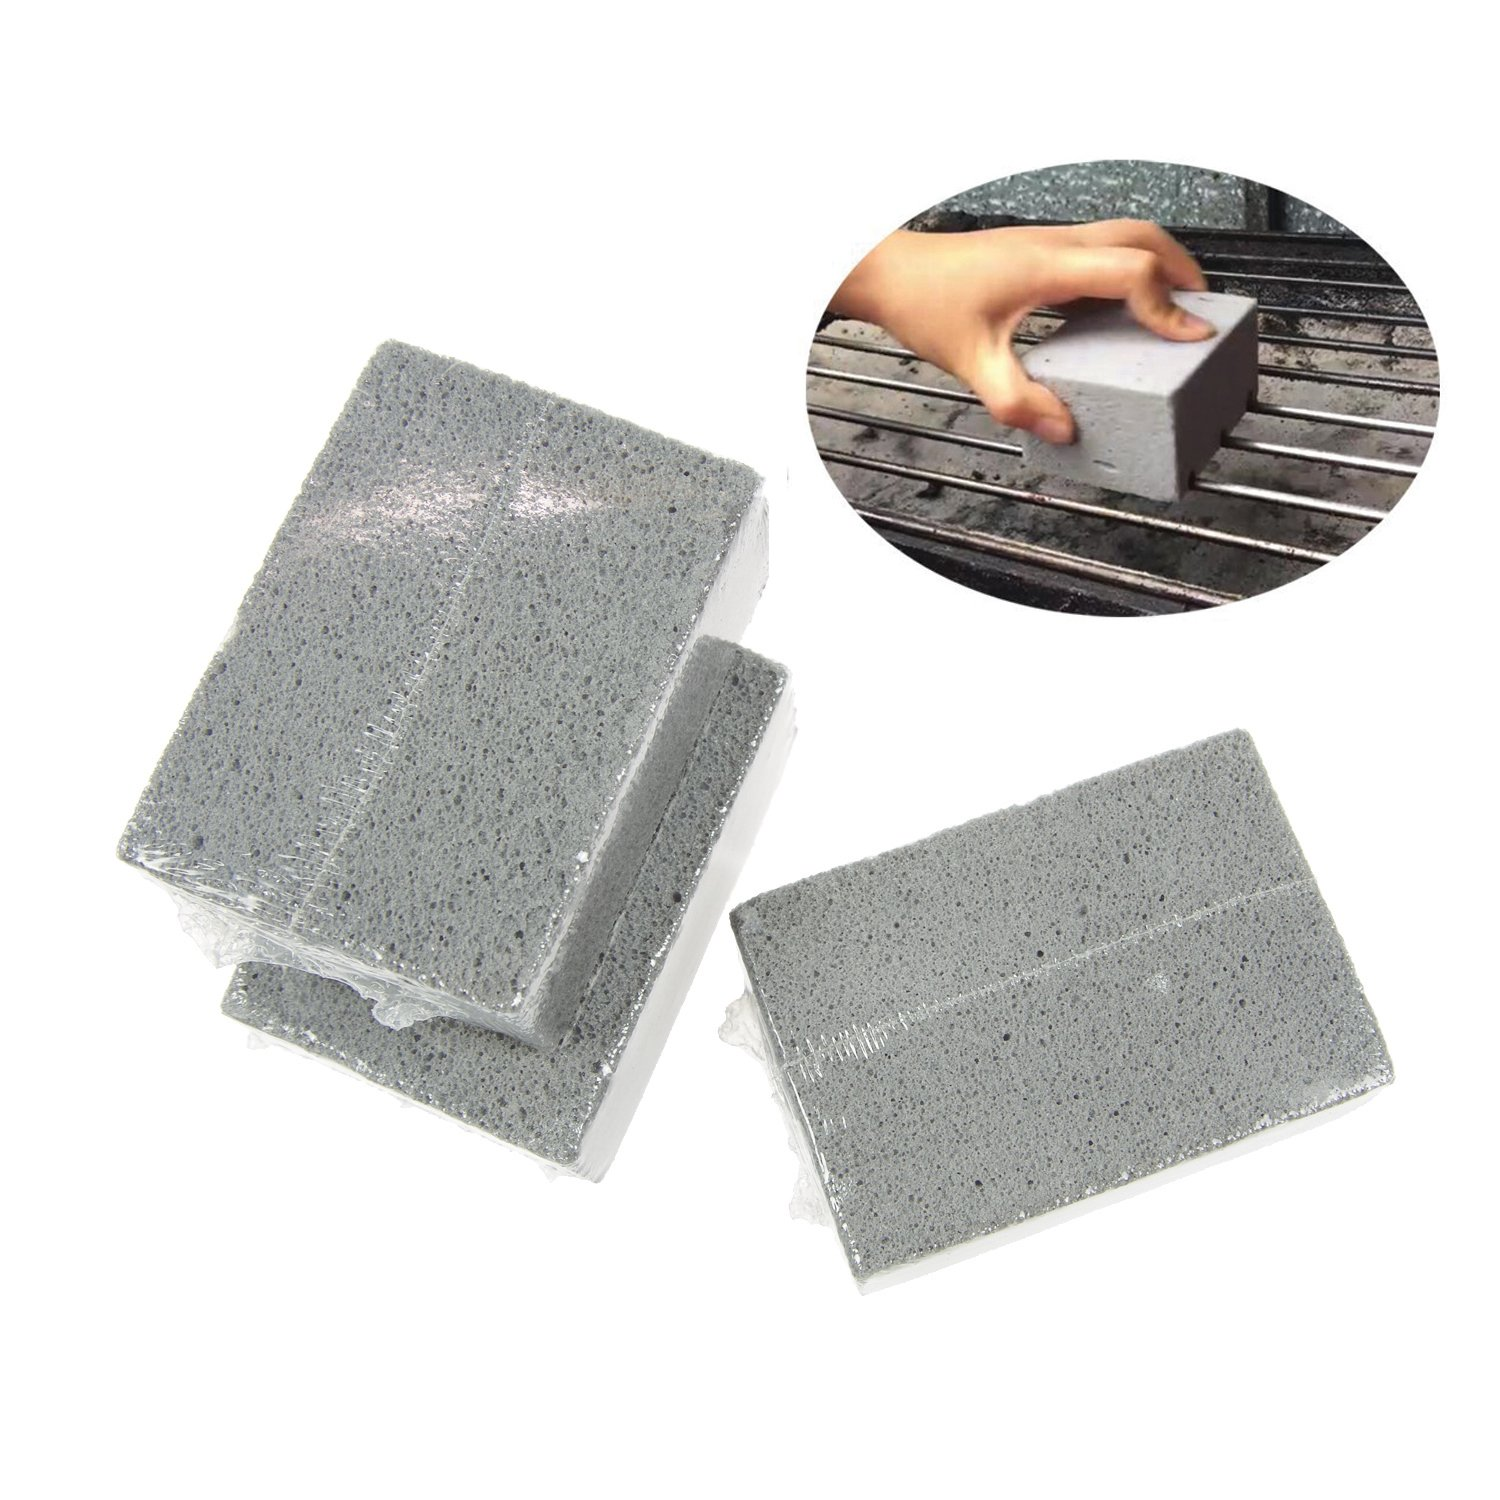 Aottor Gray Pumice Grill Stone Brick Cleaner For Cleaning Grills Pans,Pack of 3